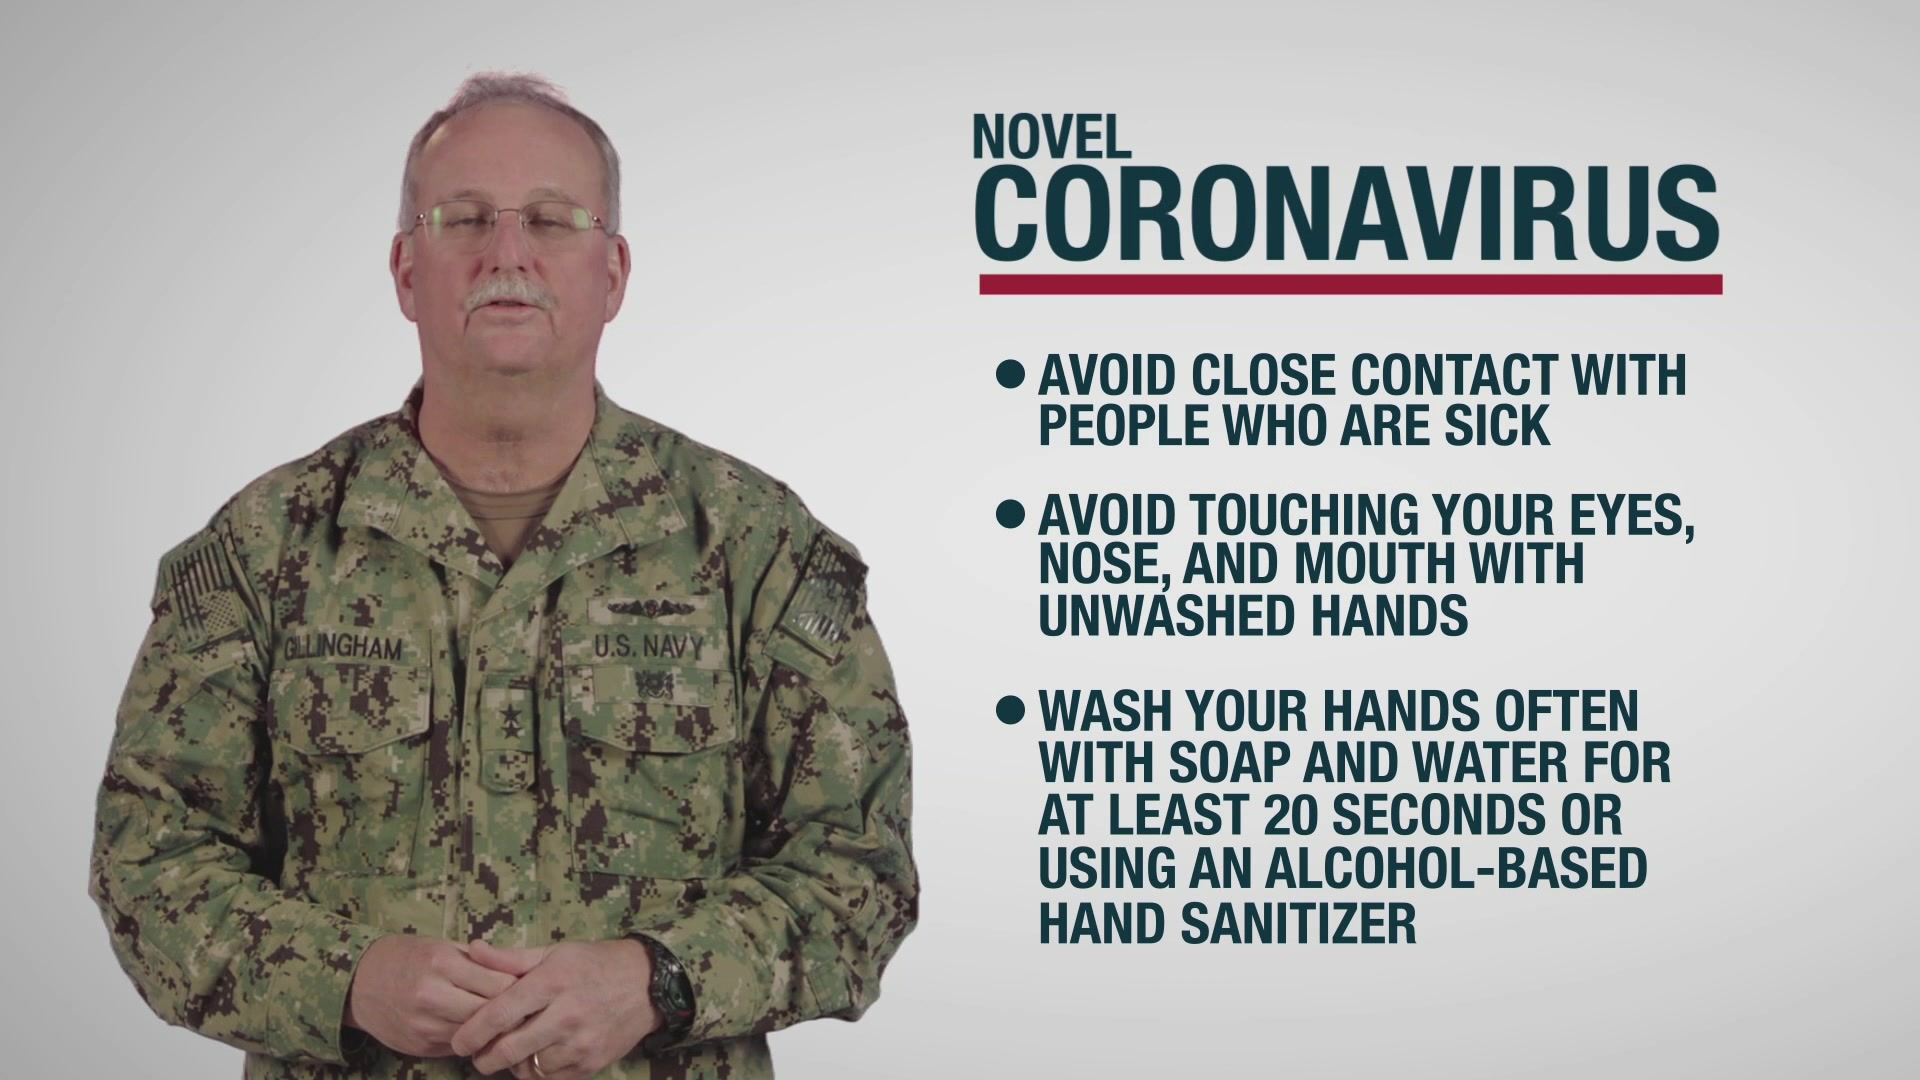 US Navy Surgeon General message to Sailors and Marines about CDC guidelines regarding the Novel Coronavirus.